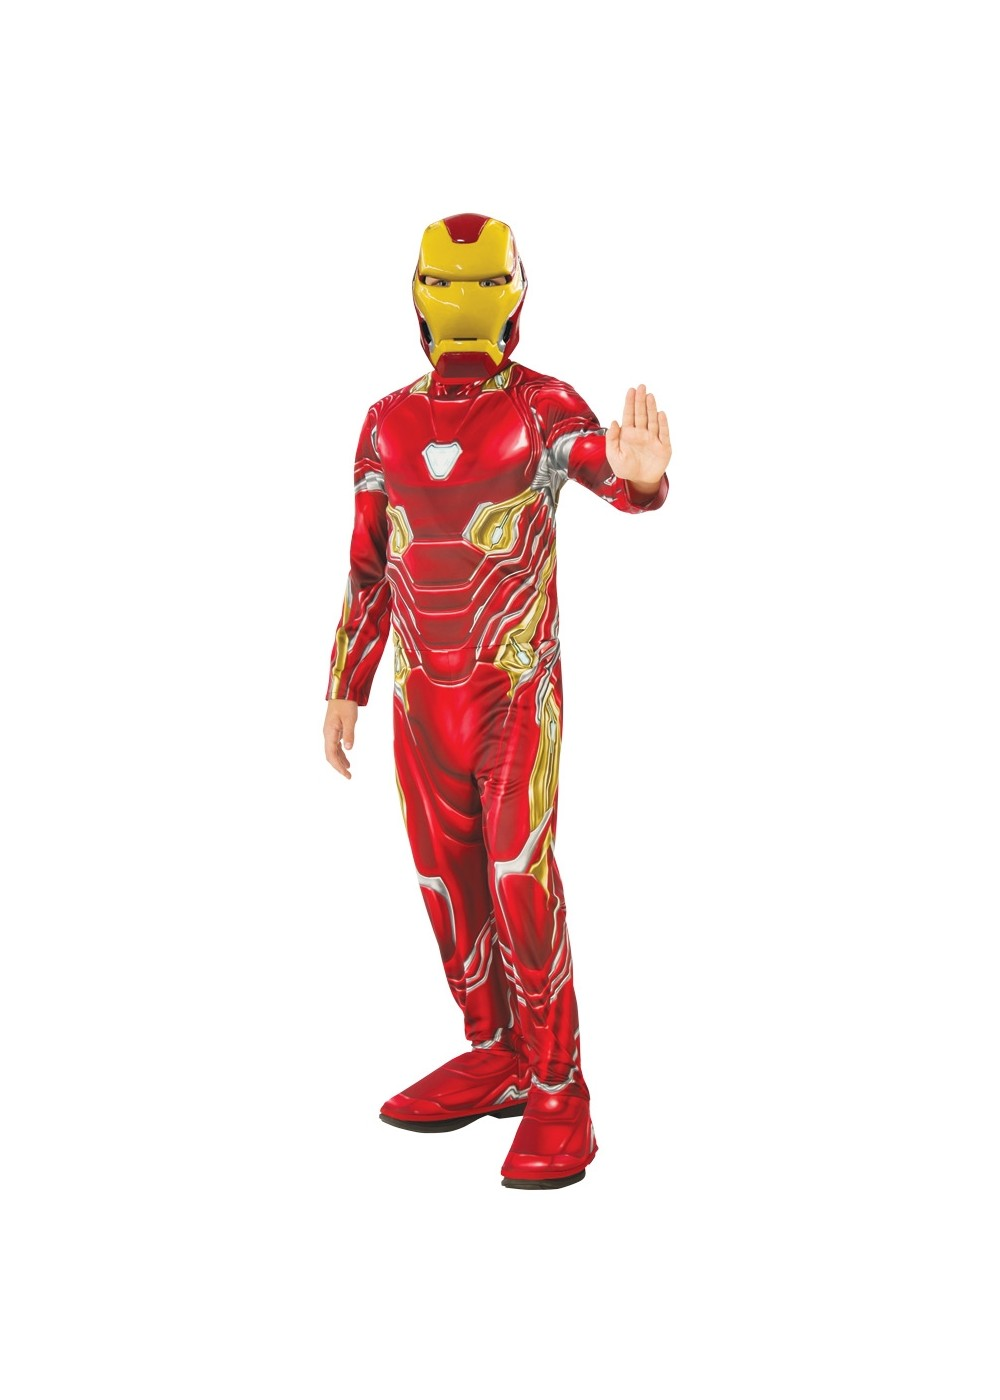 Boys Endgame Iron Man Mark 50 Suit Costume Economy